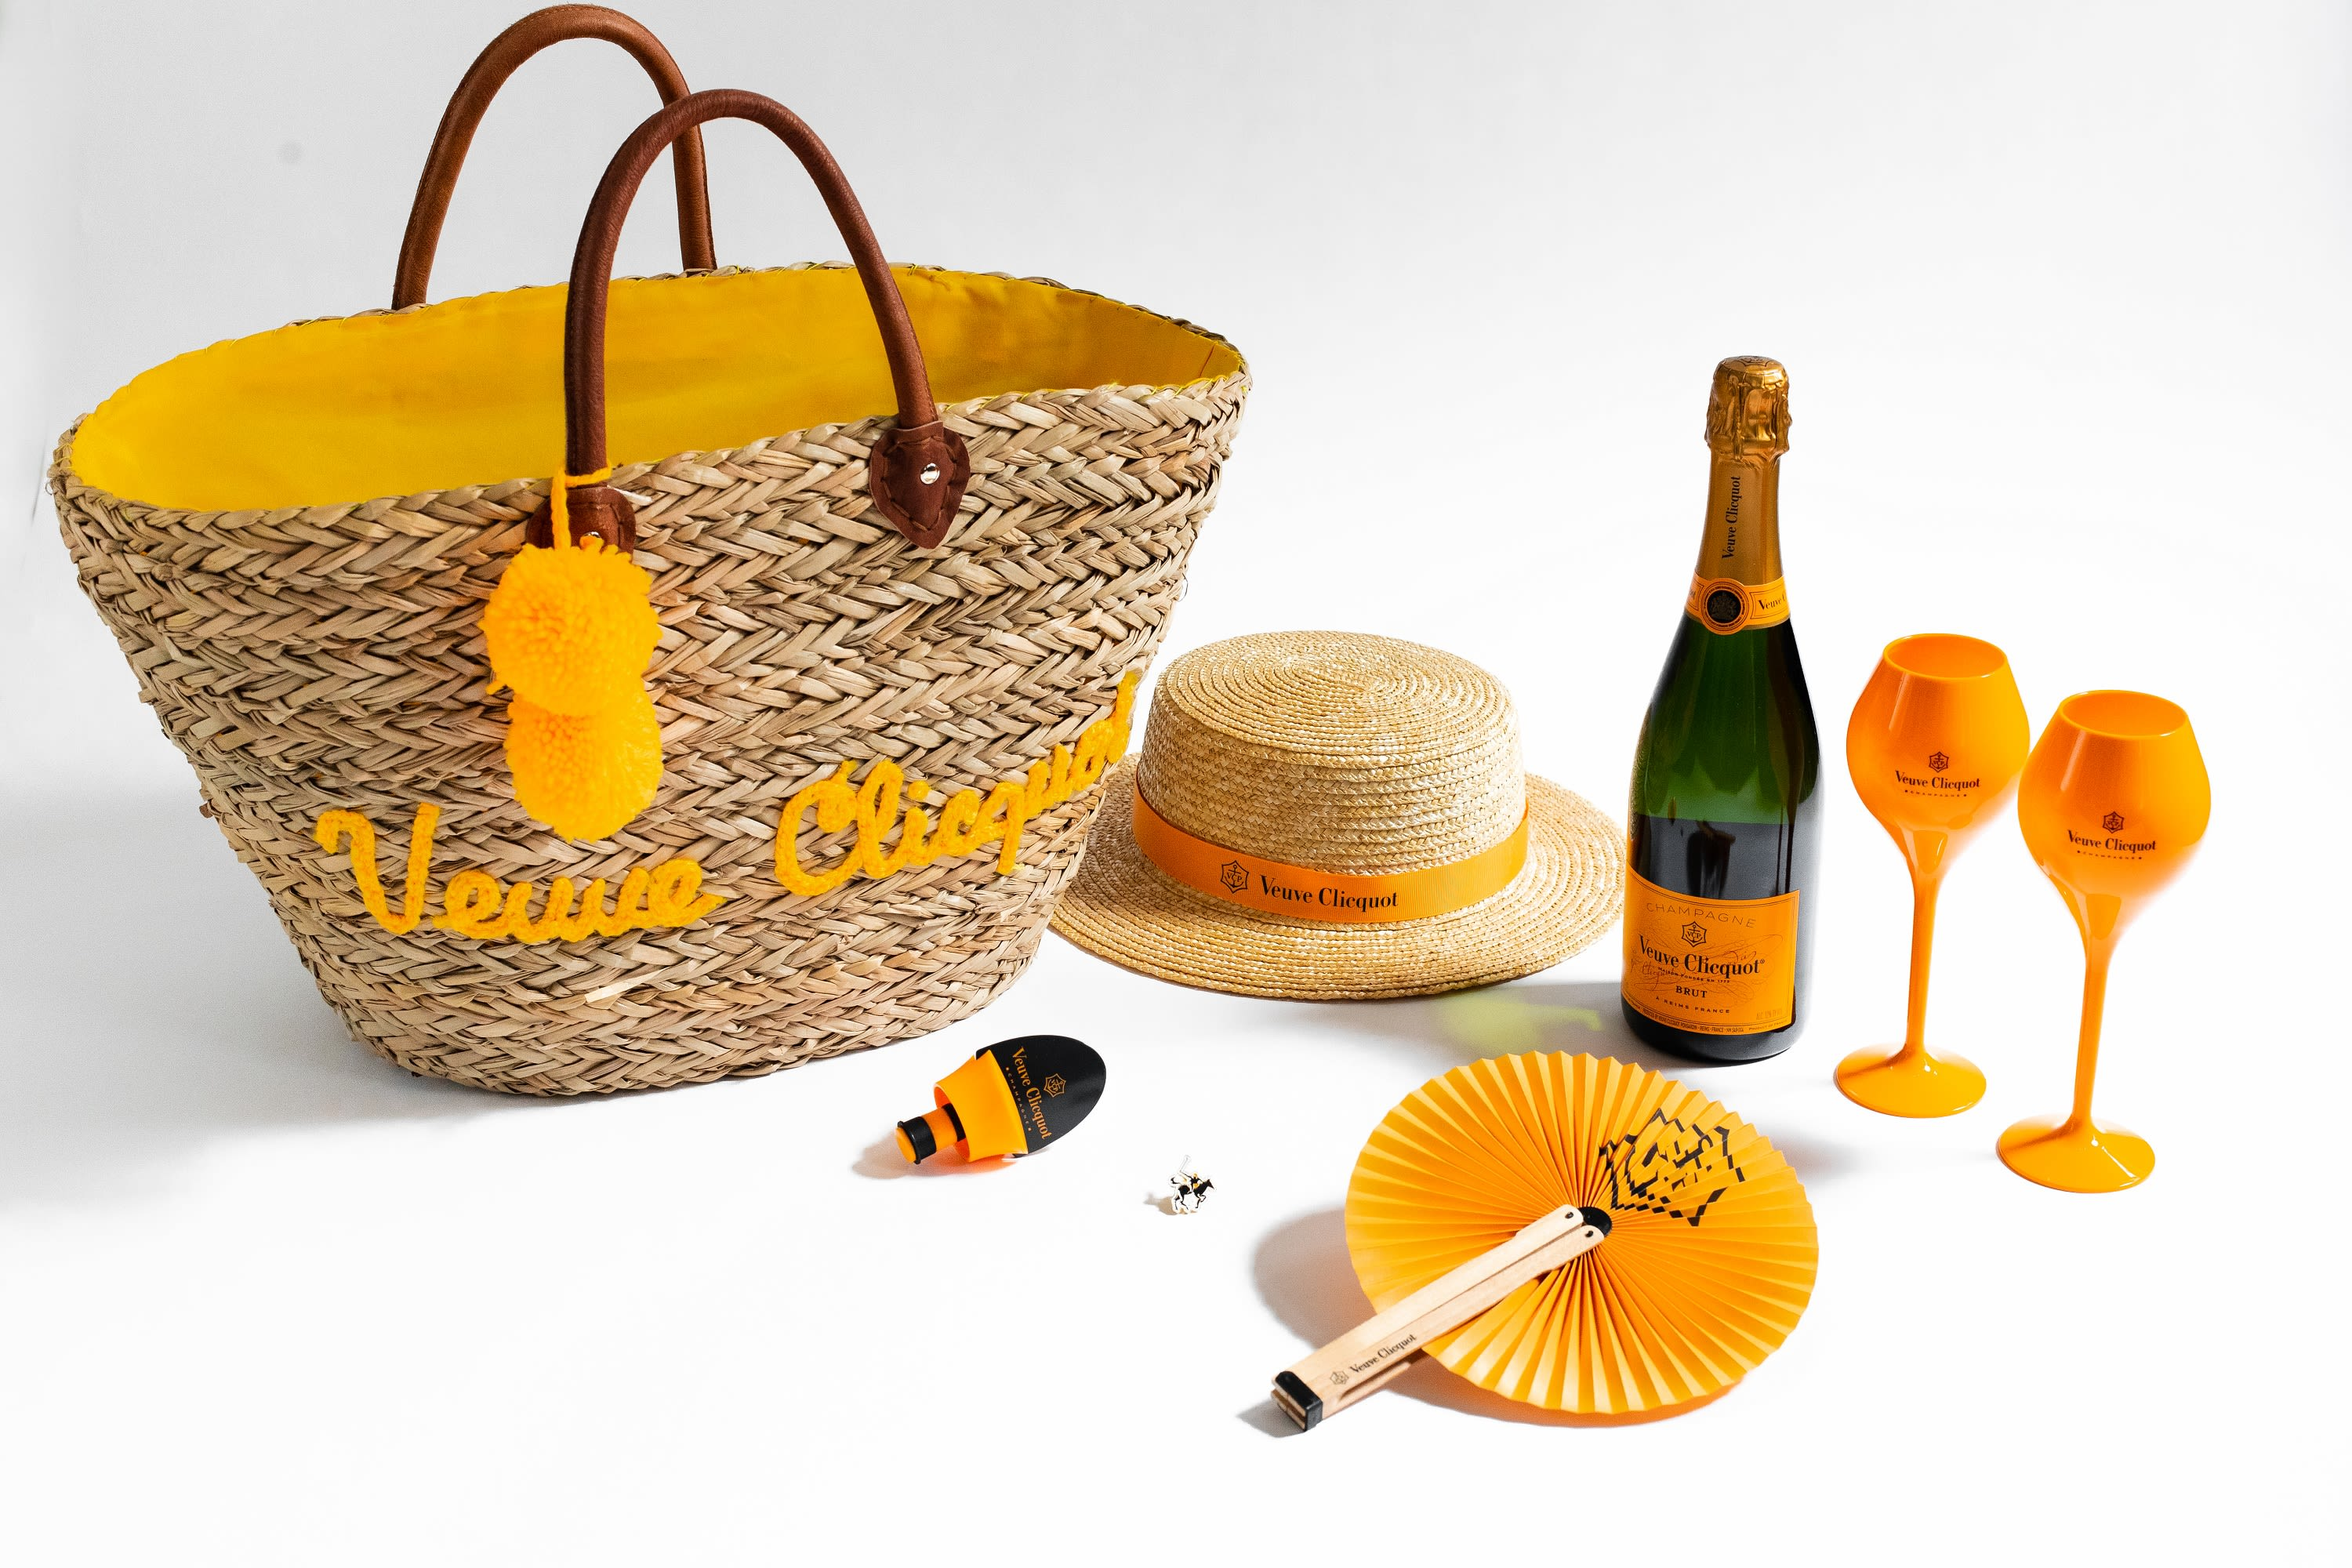 Veuve Clicquot Polo Classic Yellow Label Bottle with Picnic Essentials Set  Gift Product Image